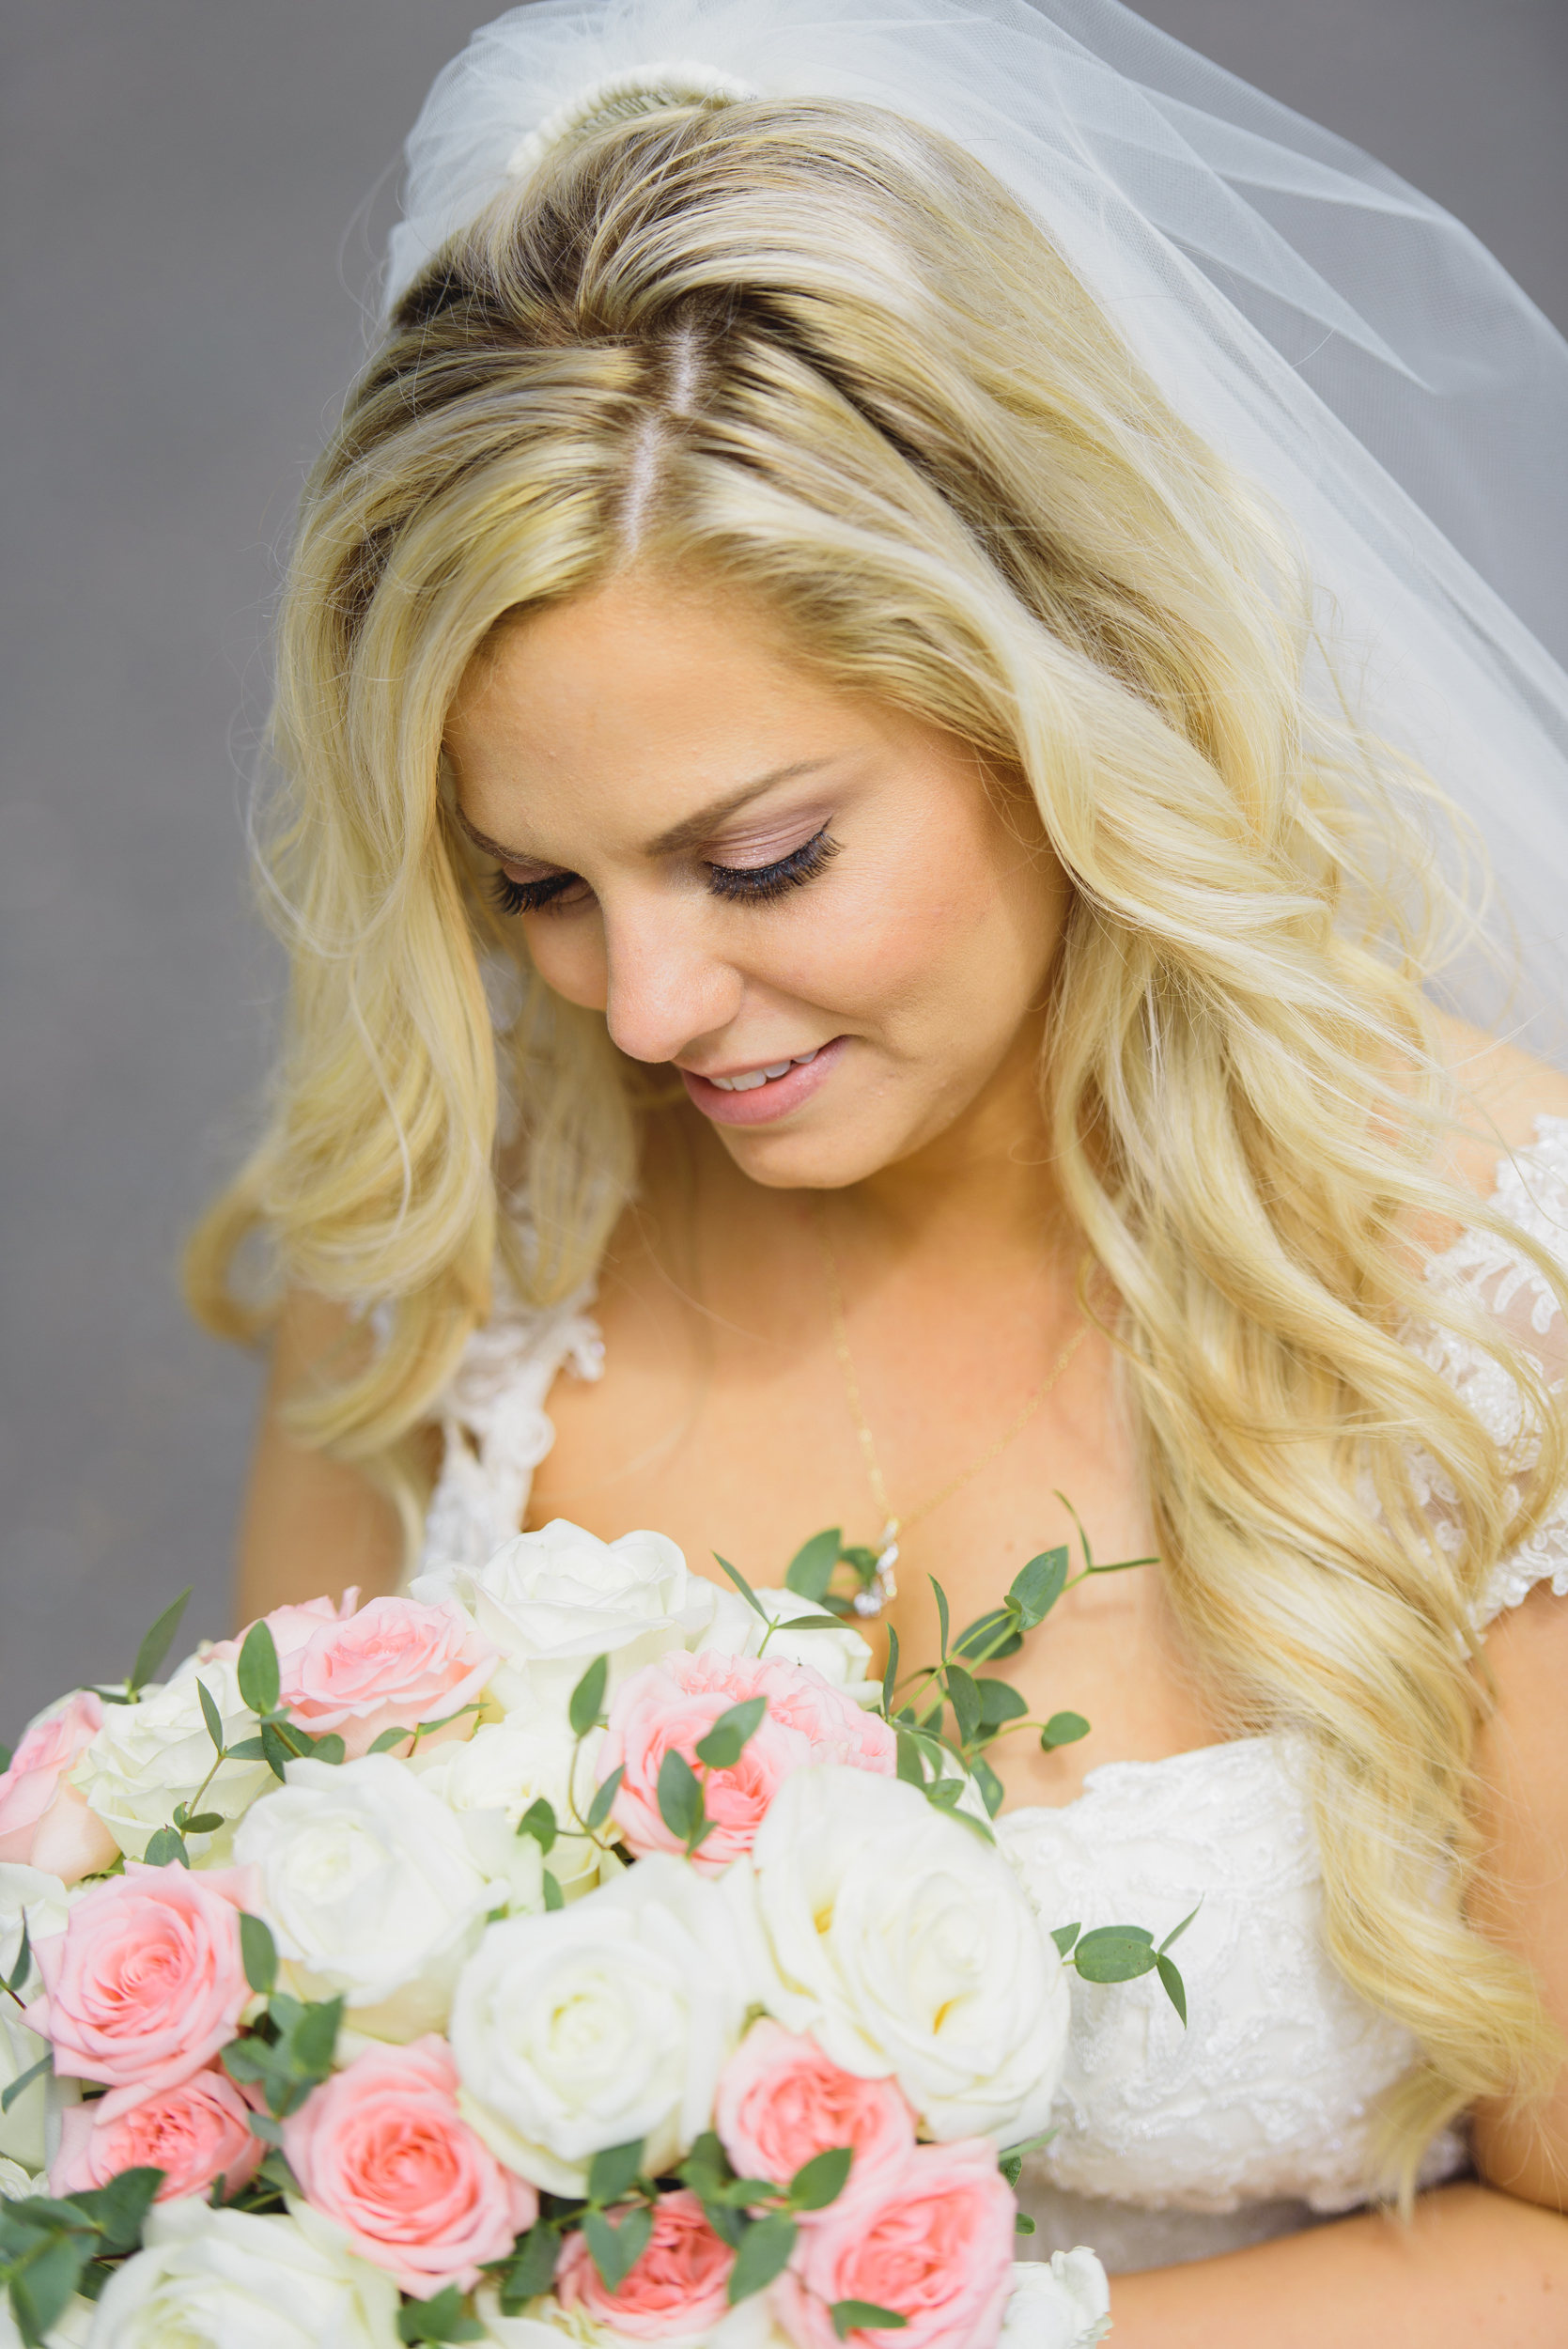 Bride and her flowers - Pearl Weddings & Events